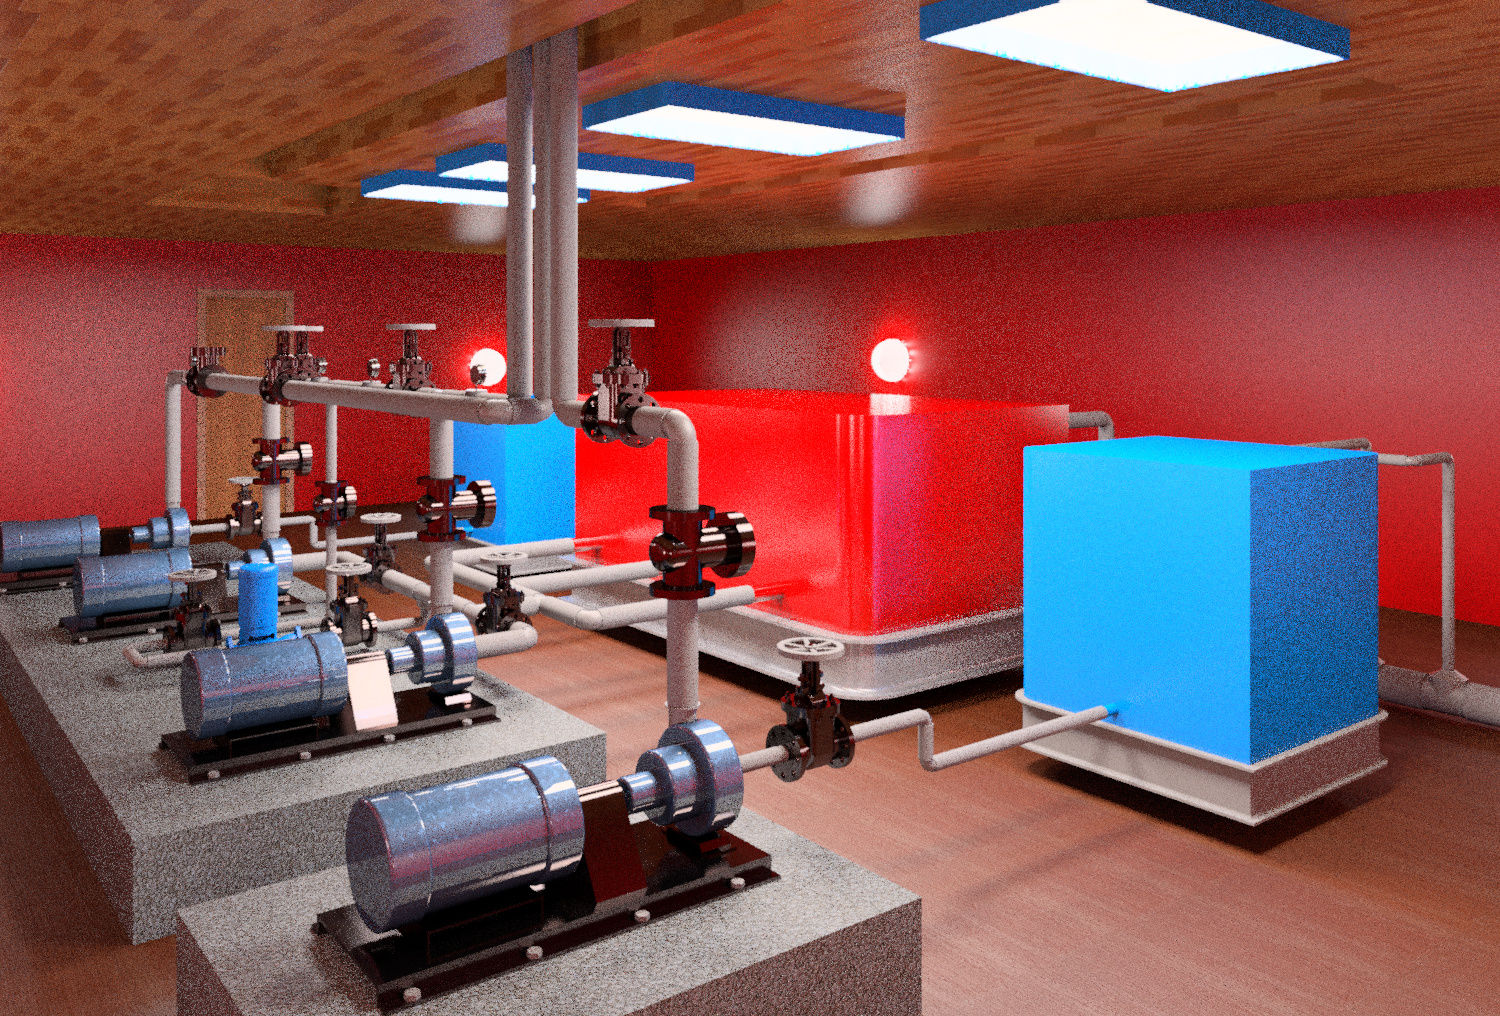 Pump room For Fire Fighting Water Based SystemAutodesk Online Gallery